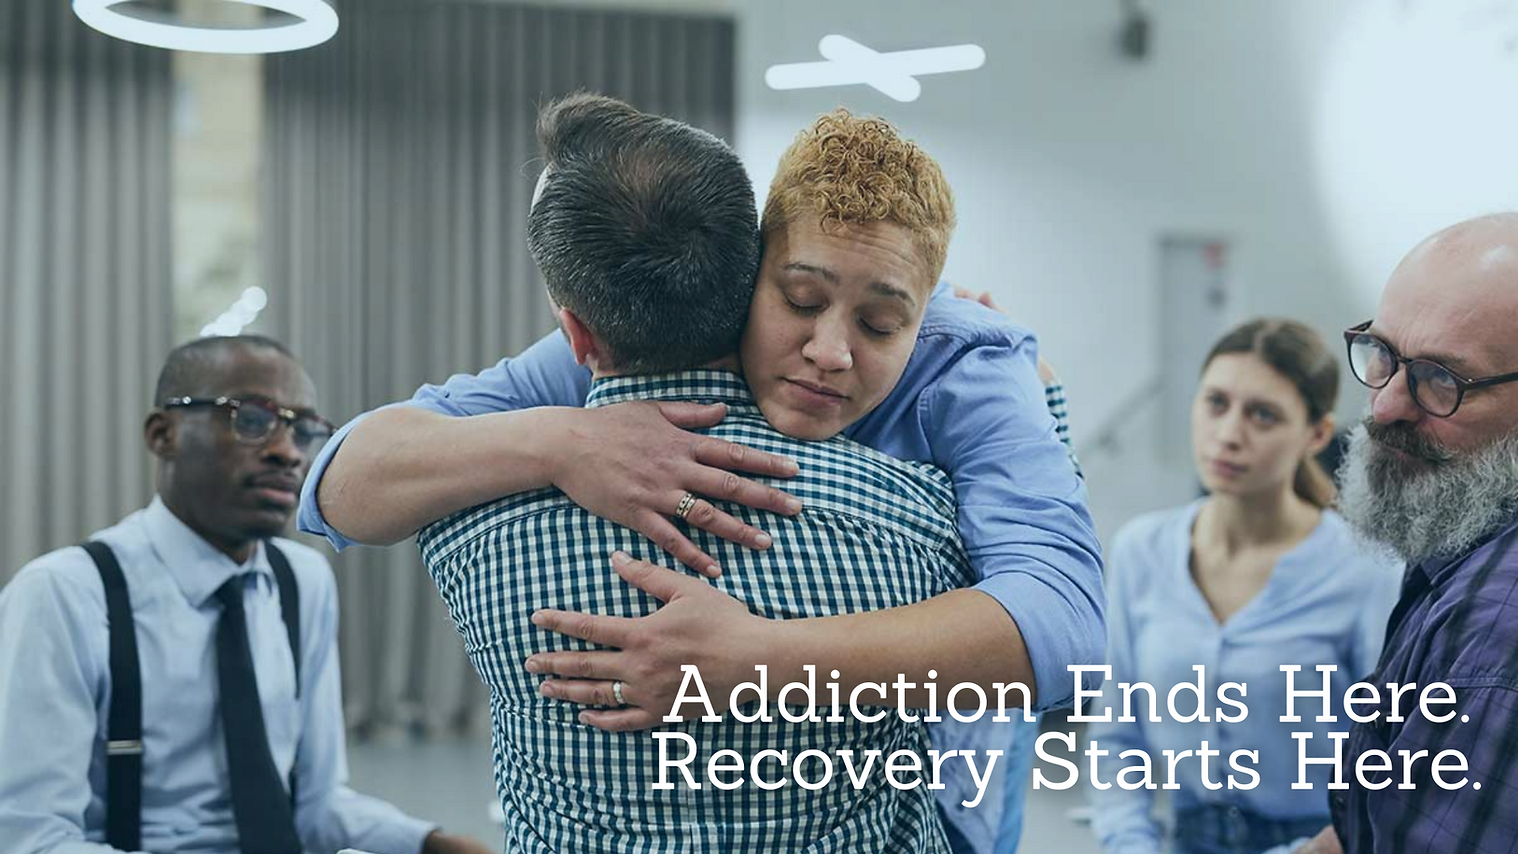 Addiction Ends Here. Recovery Starts Her